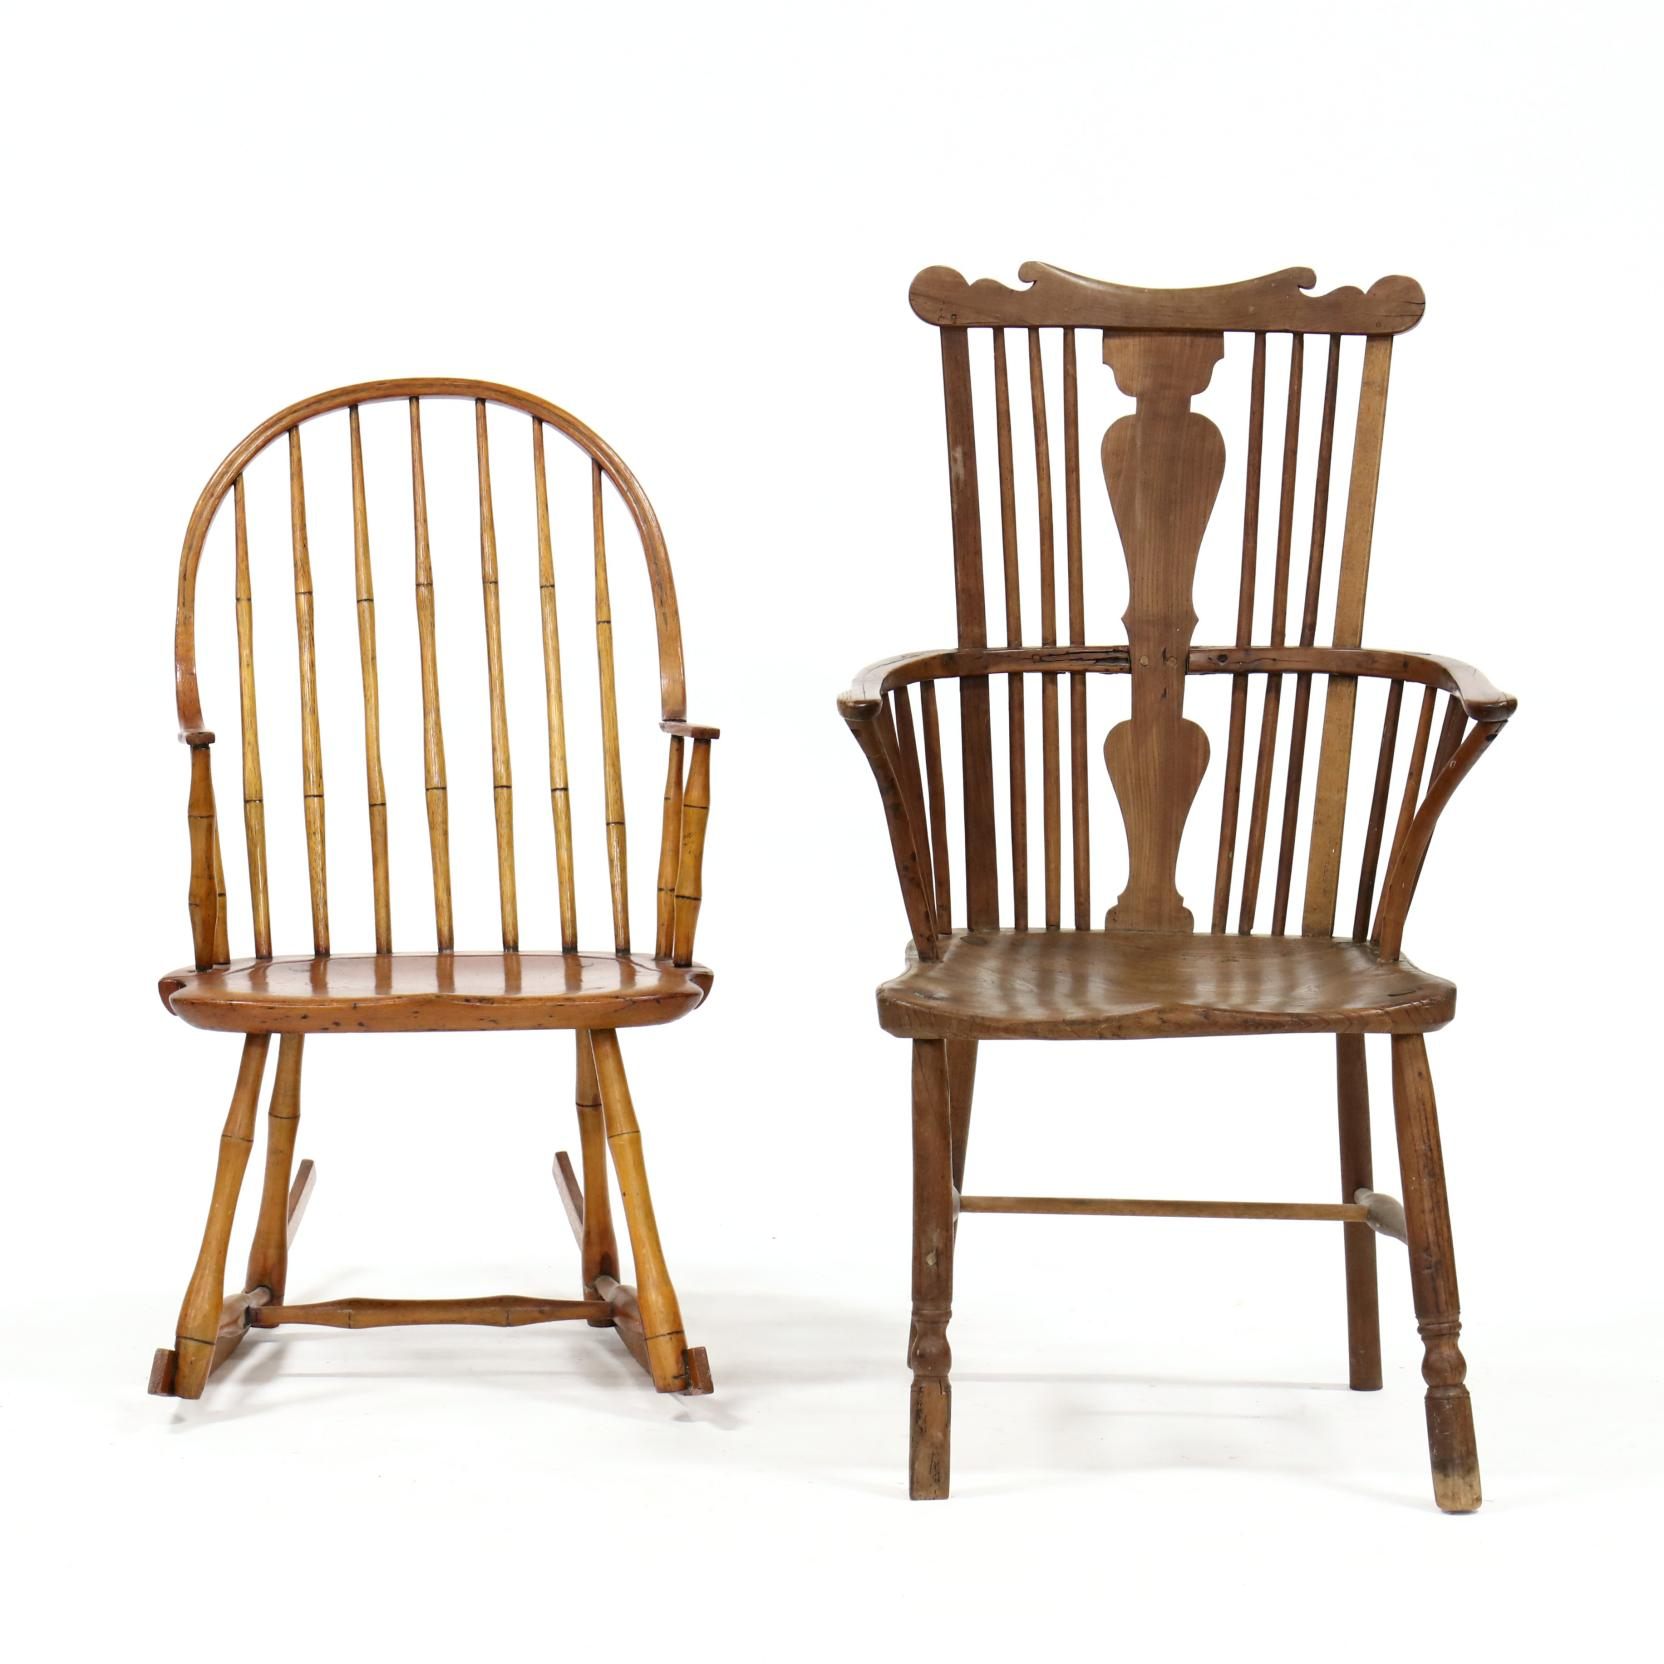 two-antique-windsor-chairs